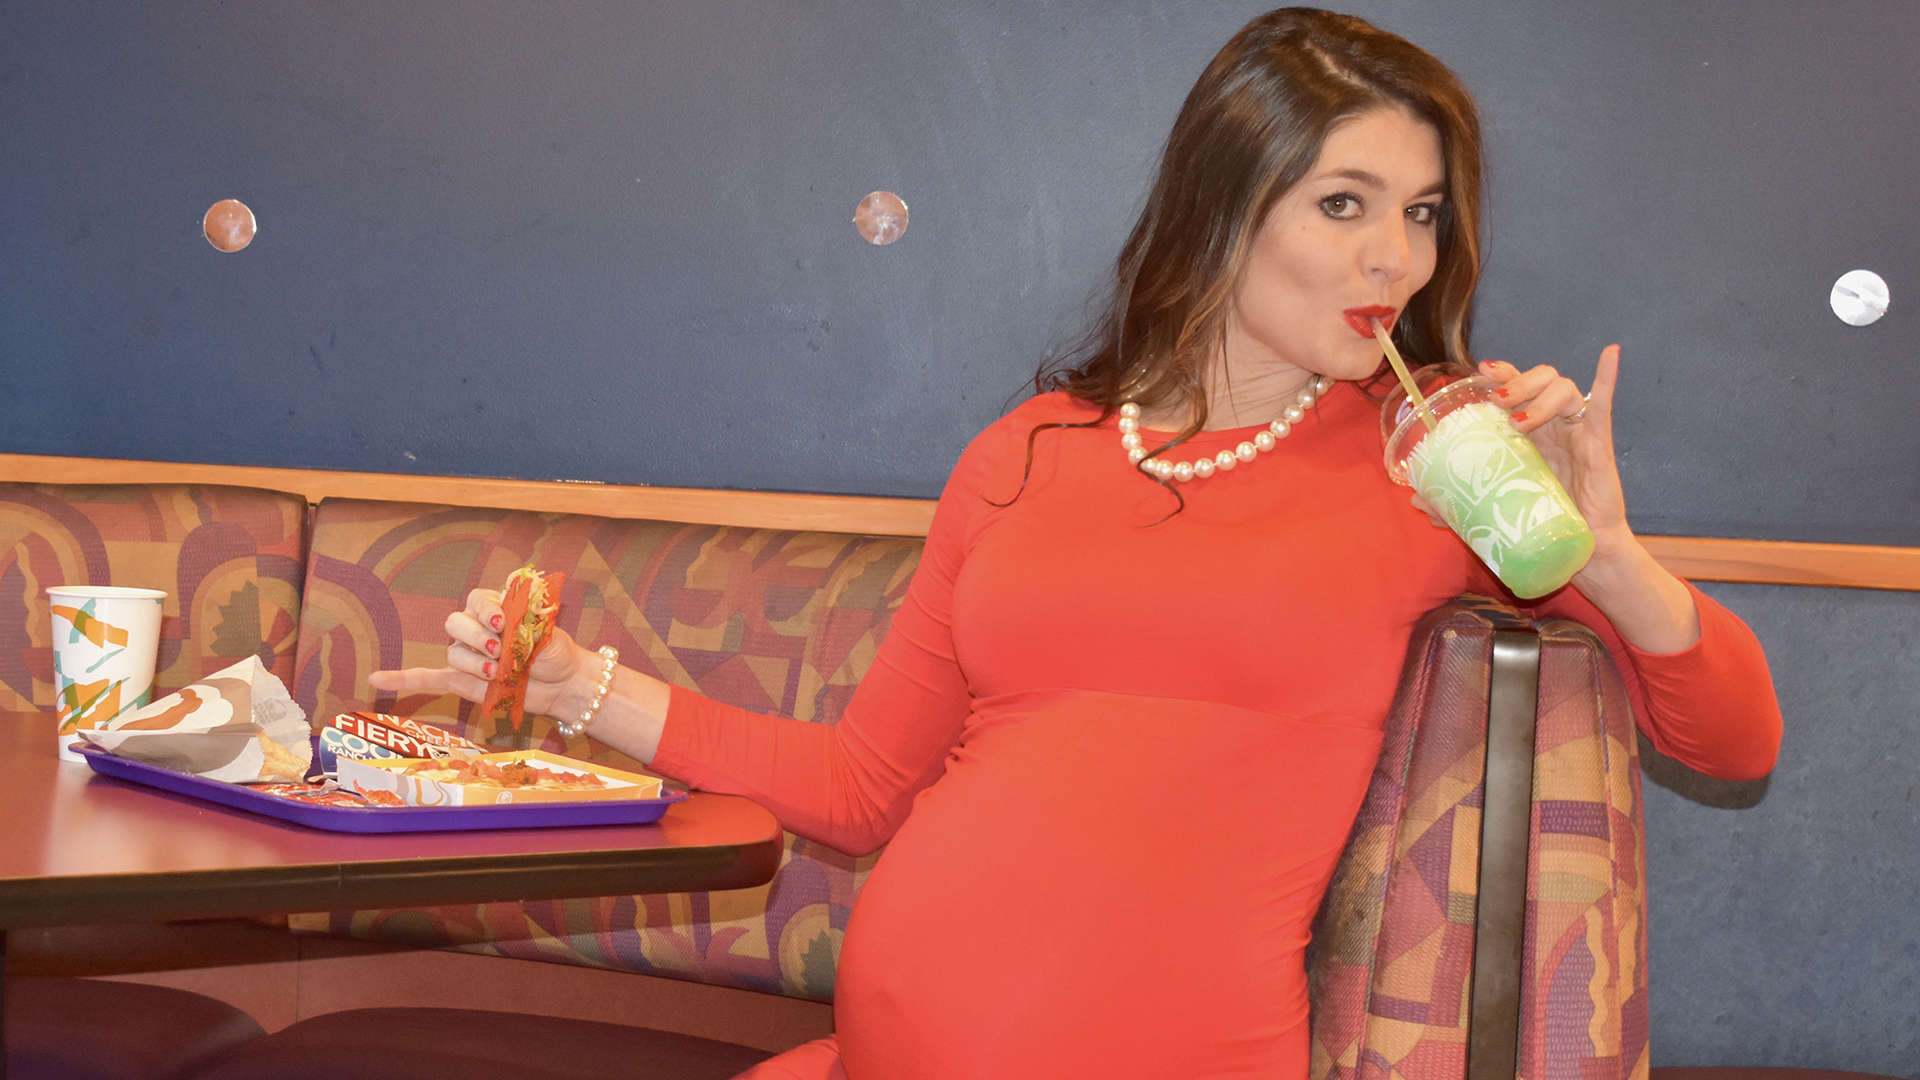 Taco 'bout creative: This mom did her maternity photos at Taco Bell